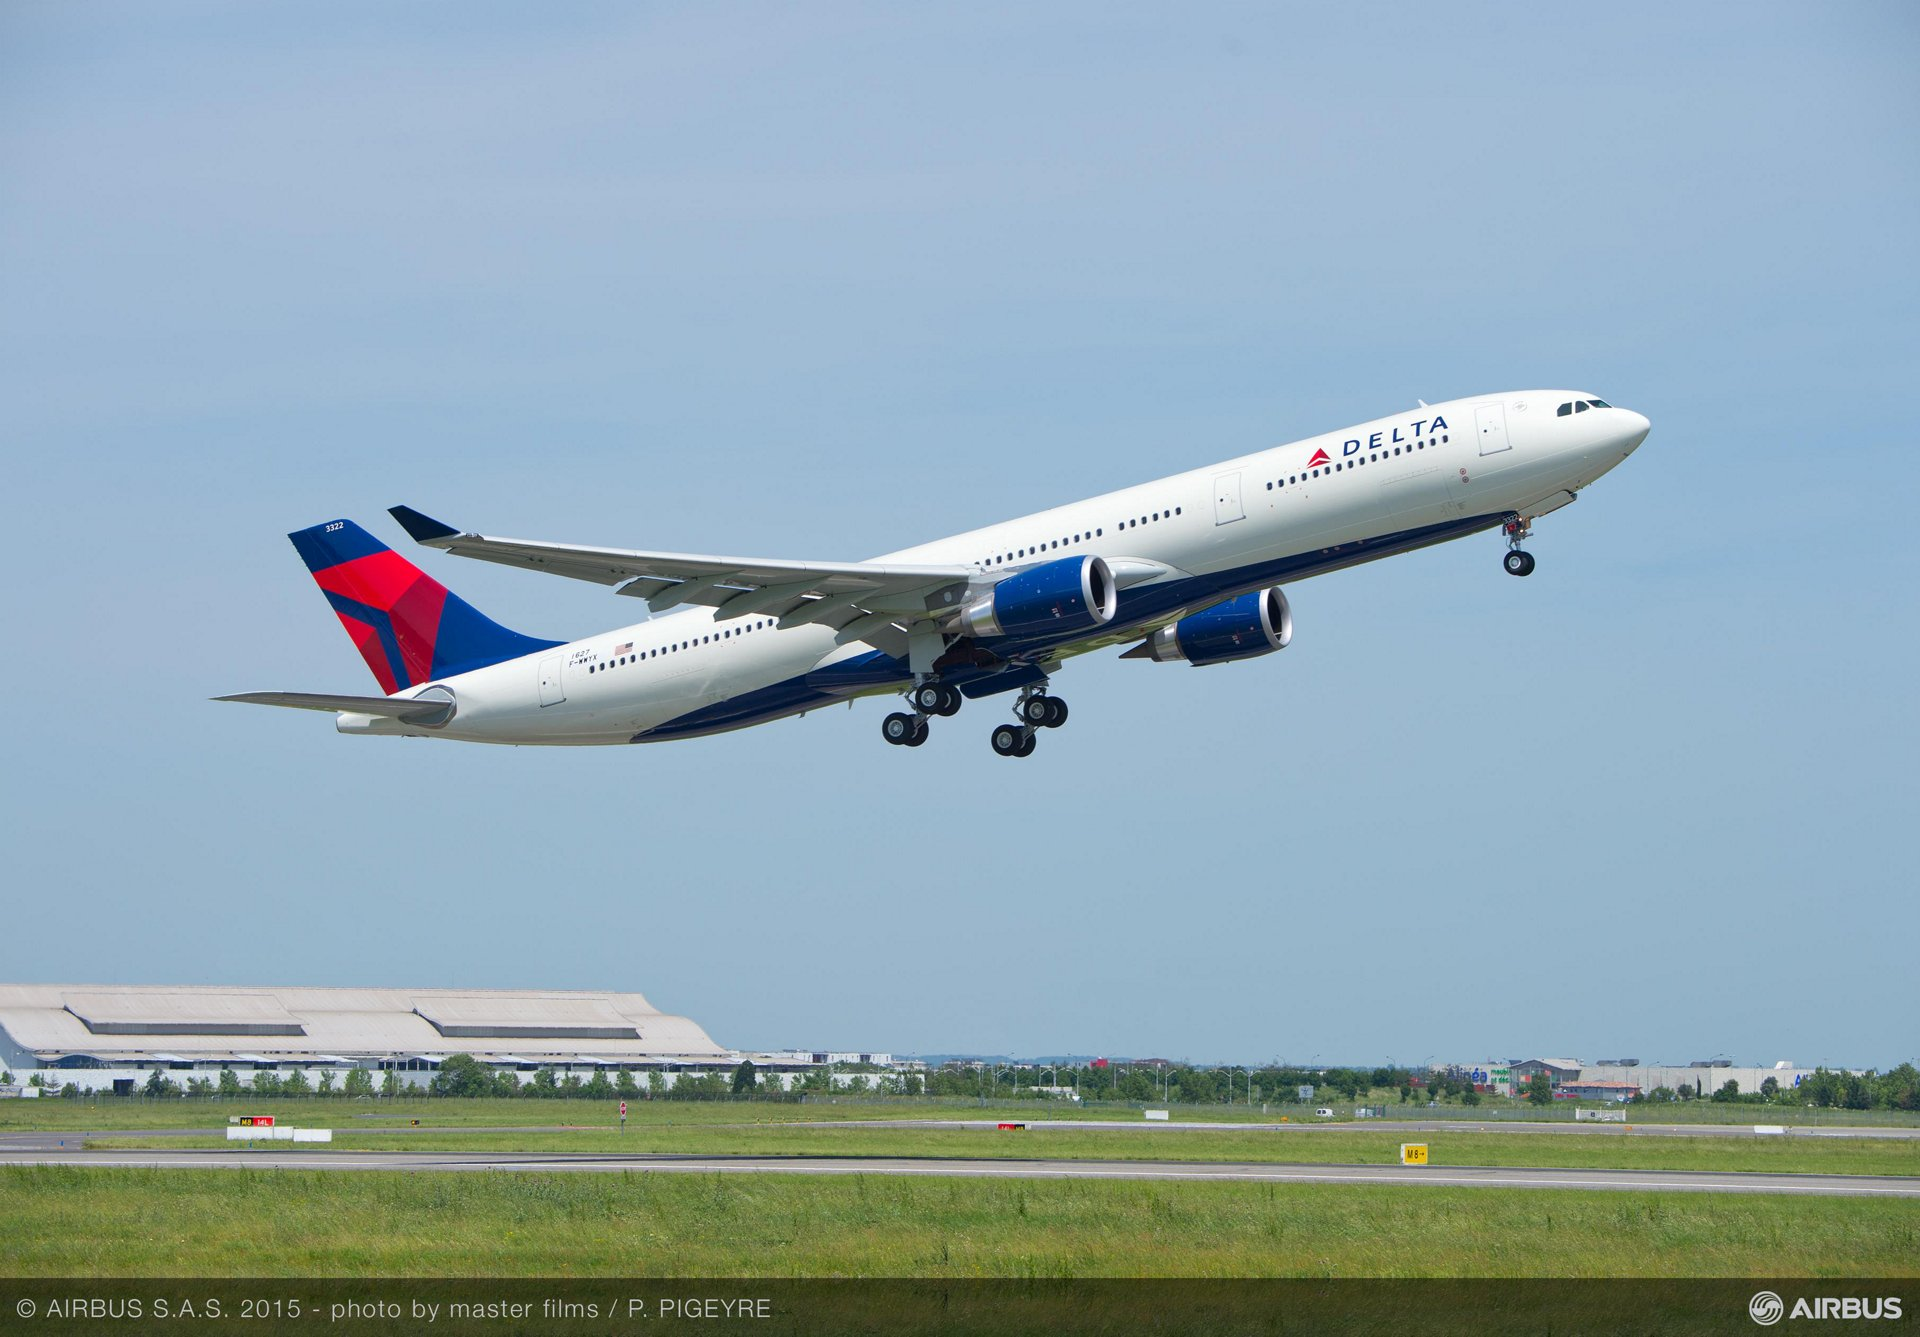 On 28 May 2015, Delta Air Lines became the first customer to take delivery of the enhanced 242-tonne maximum take-off weight A330-300 variant, which allows for longer flights at lower costs